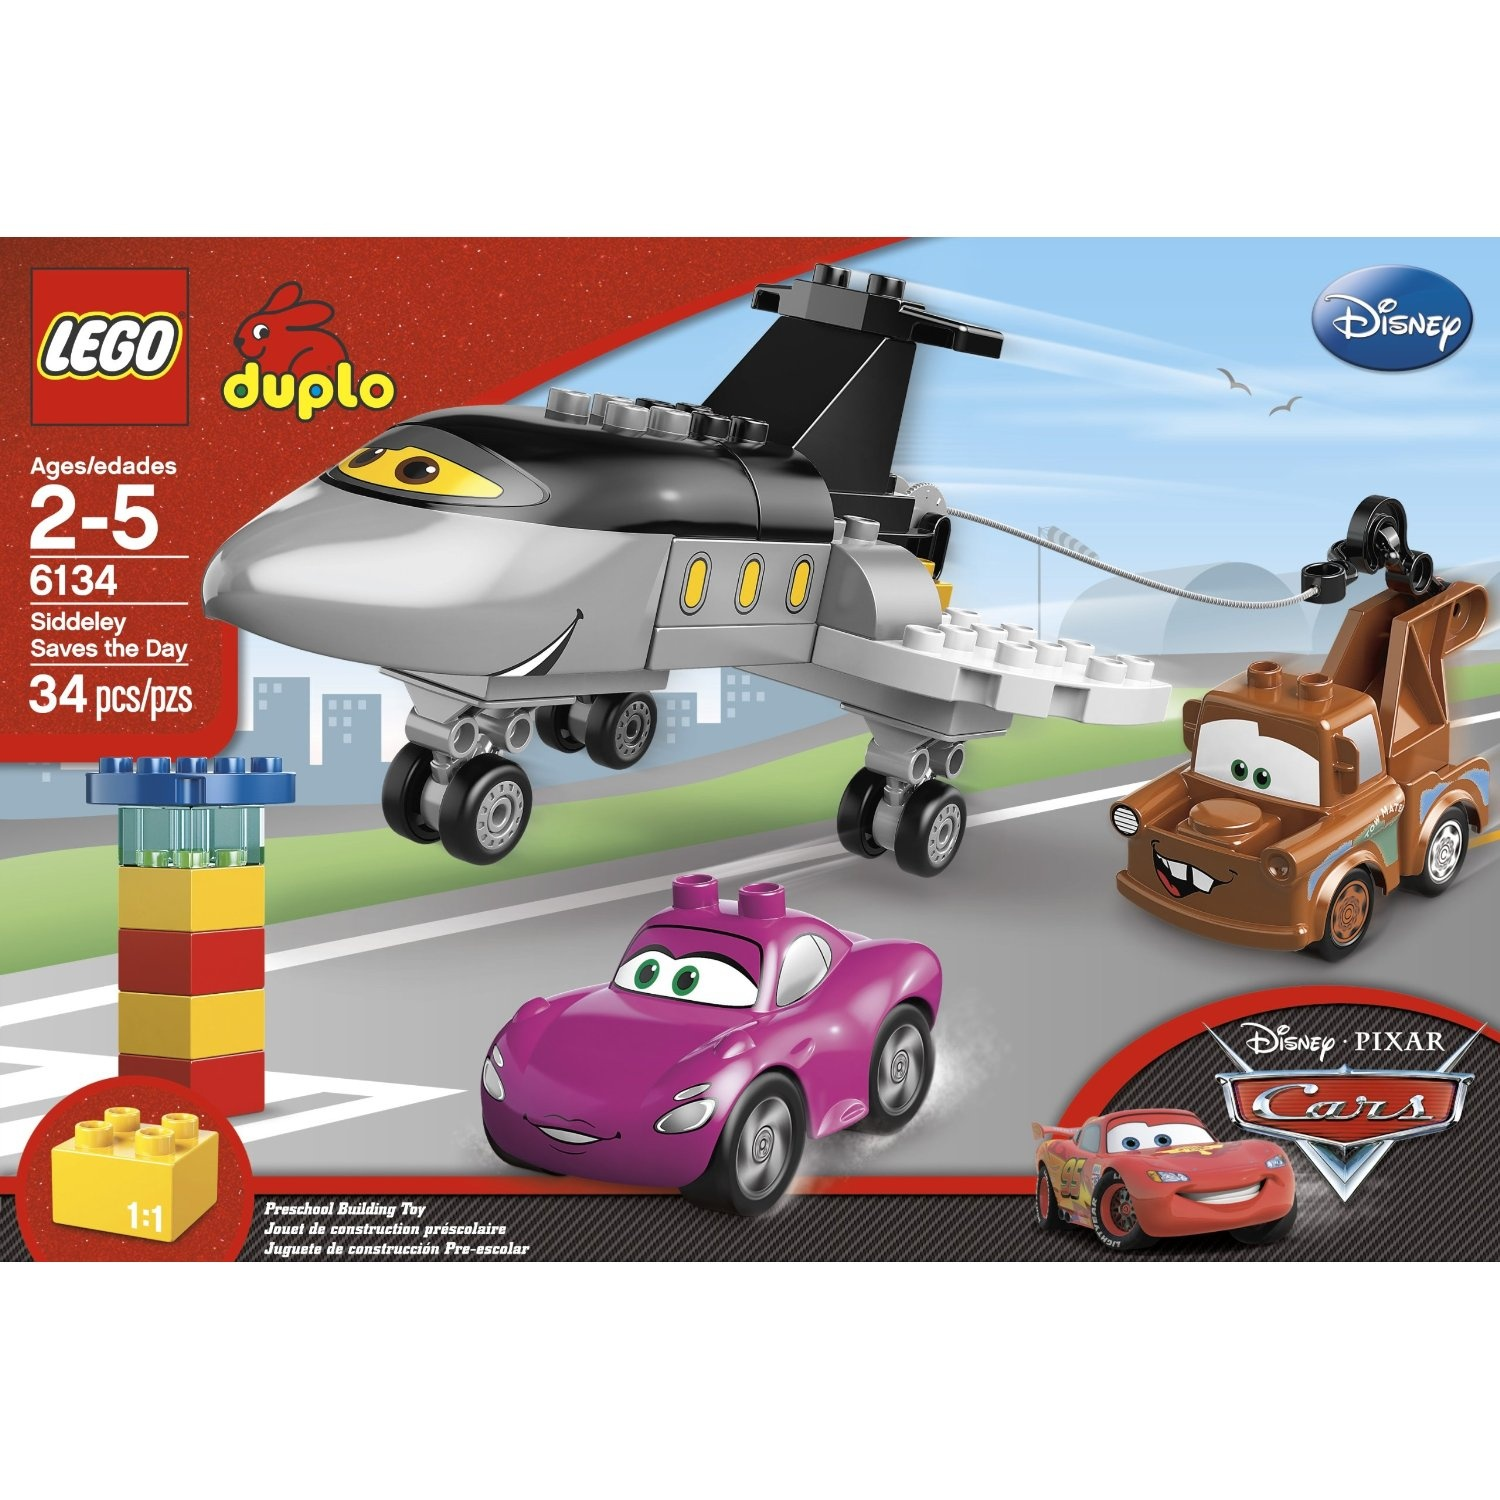 Cars 2 Siddeley Toys Buy Online From Spy Jet Escape 8638